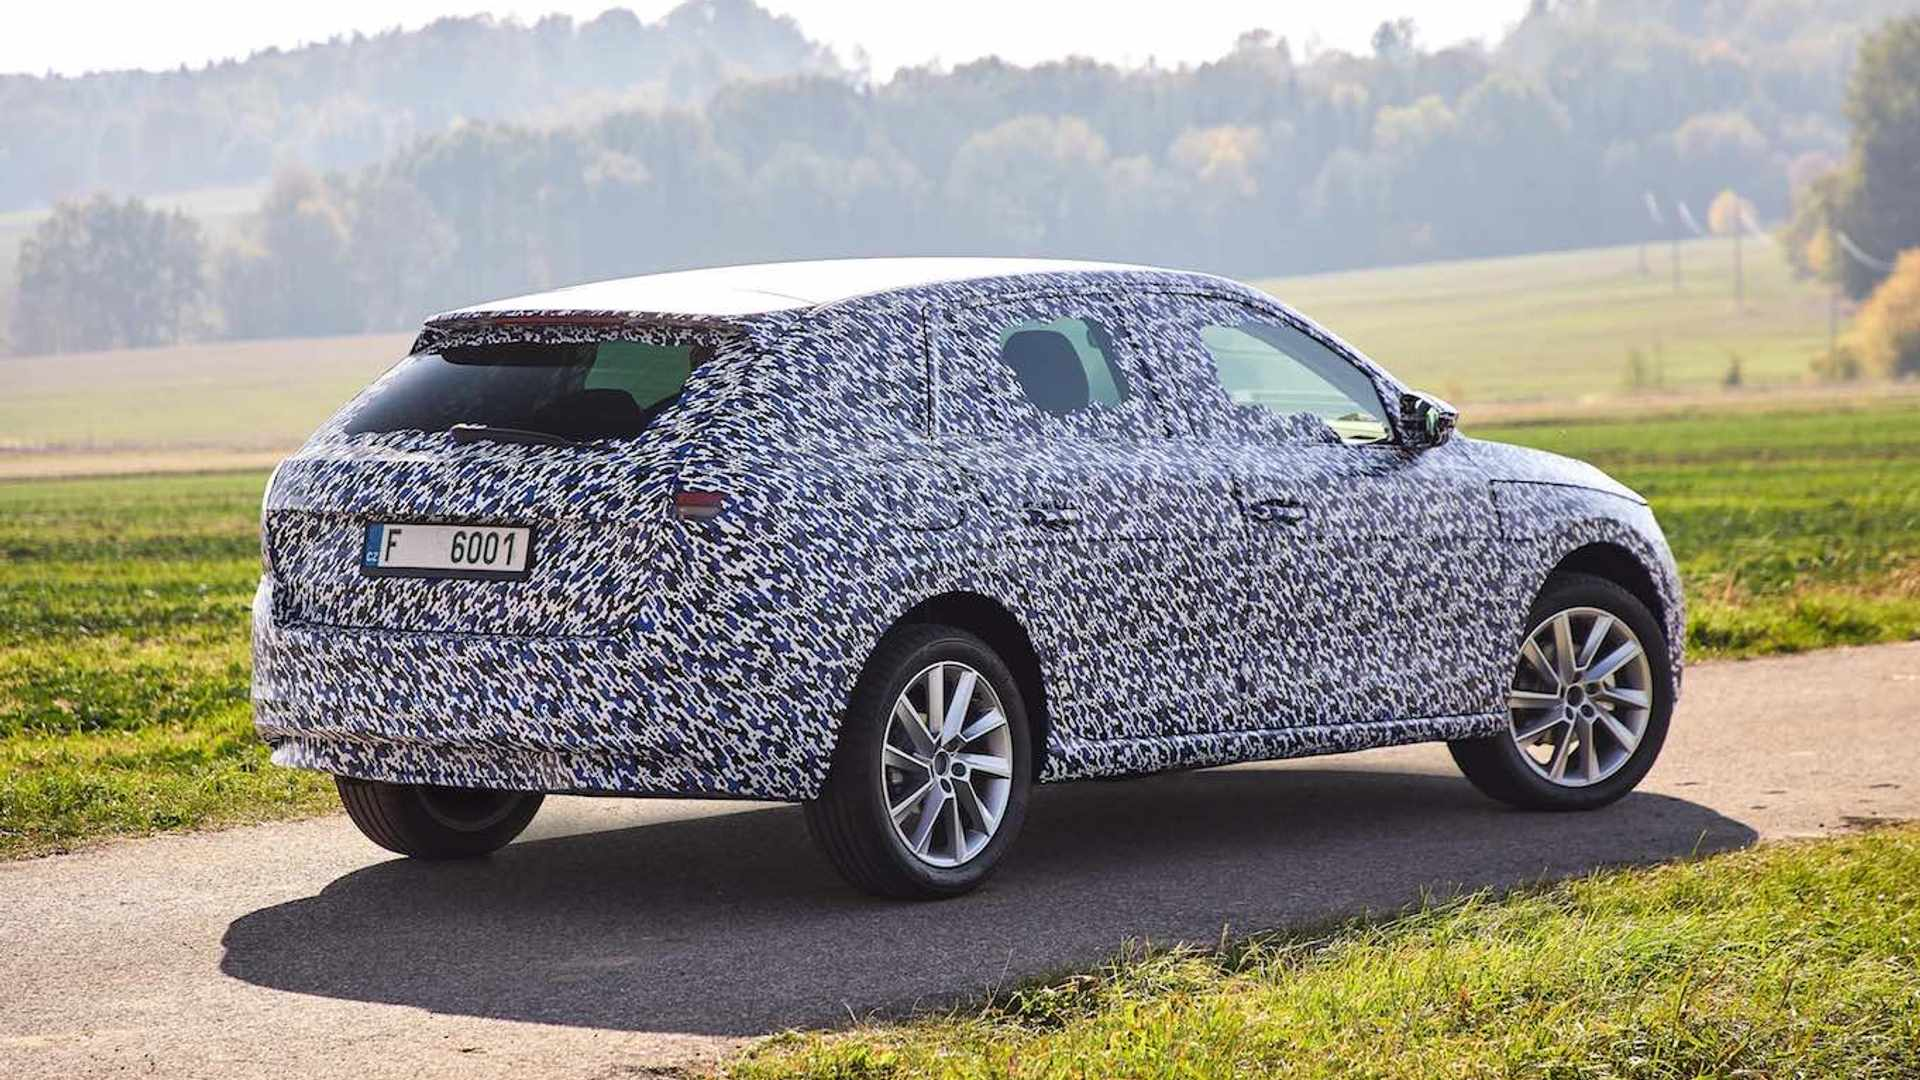 Skoda Scala First Details Emerge Official Spy Photos Released